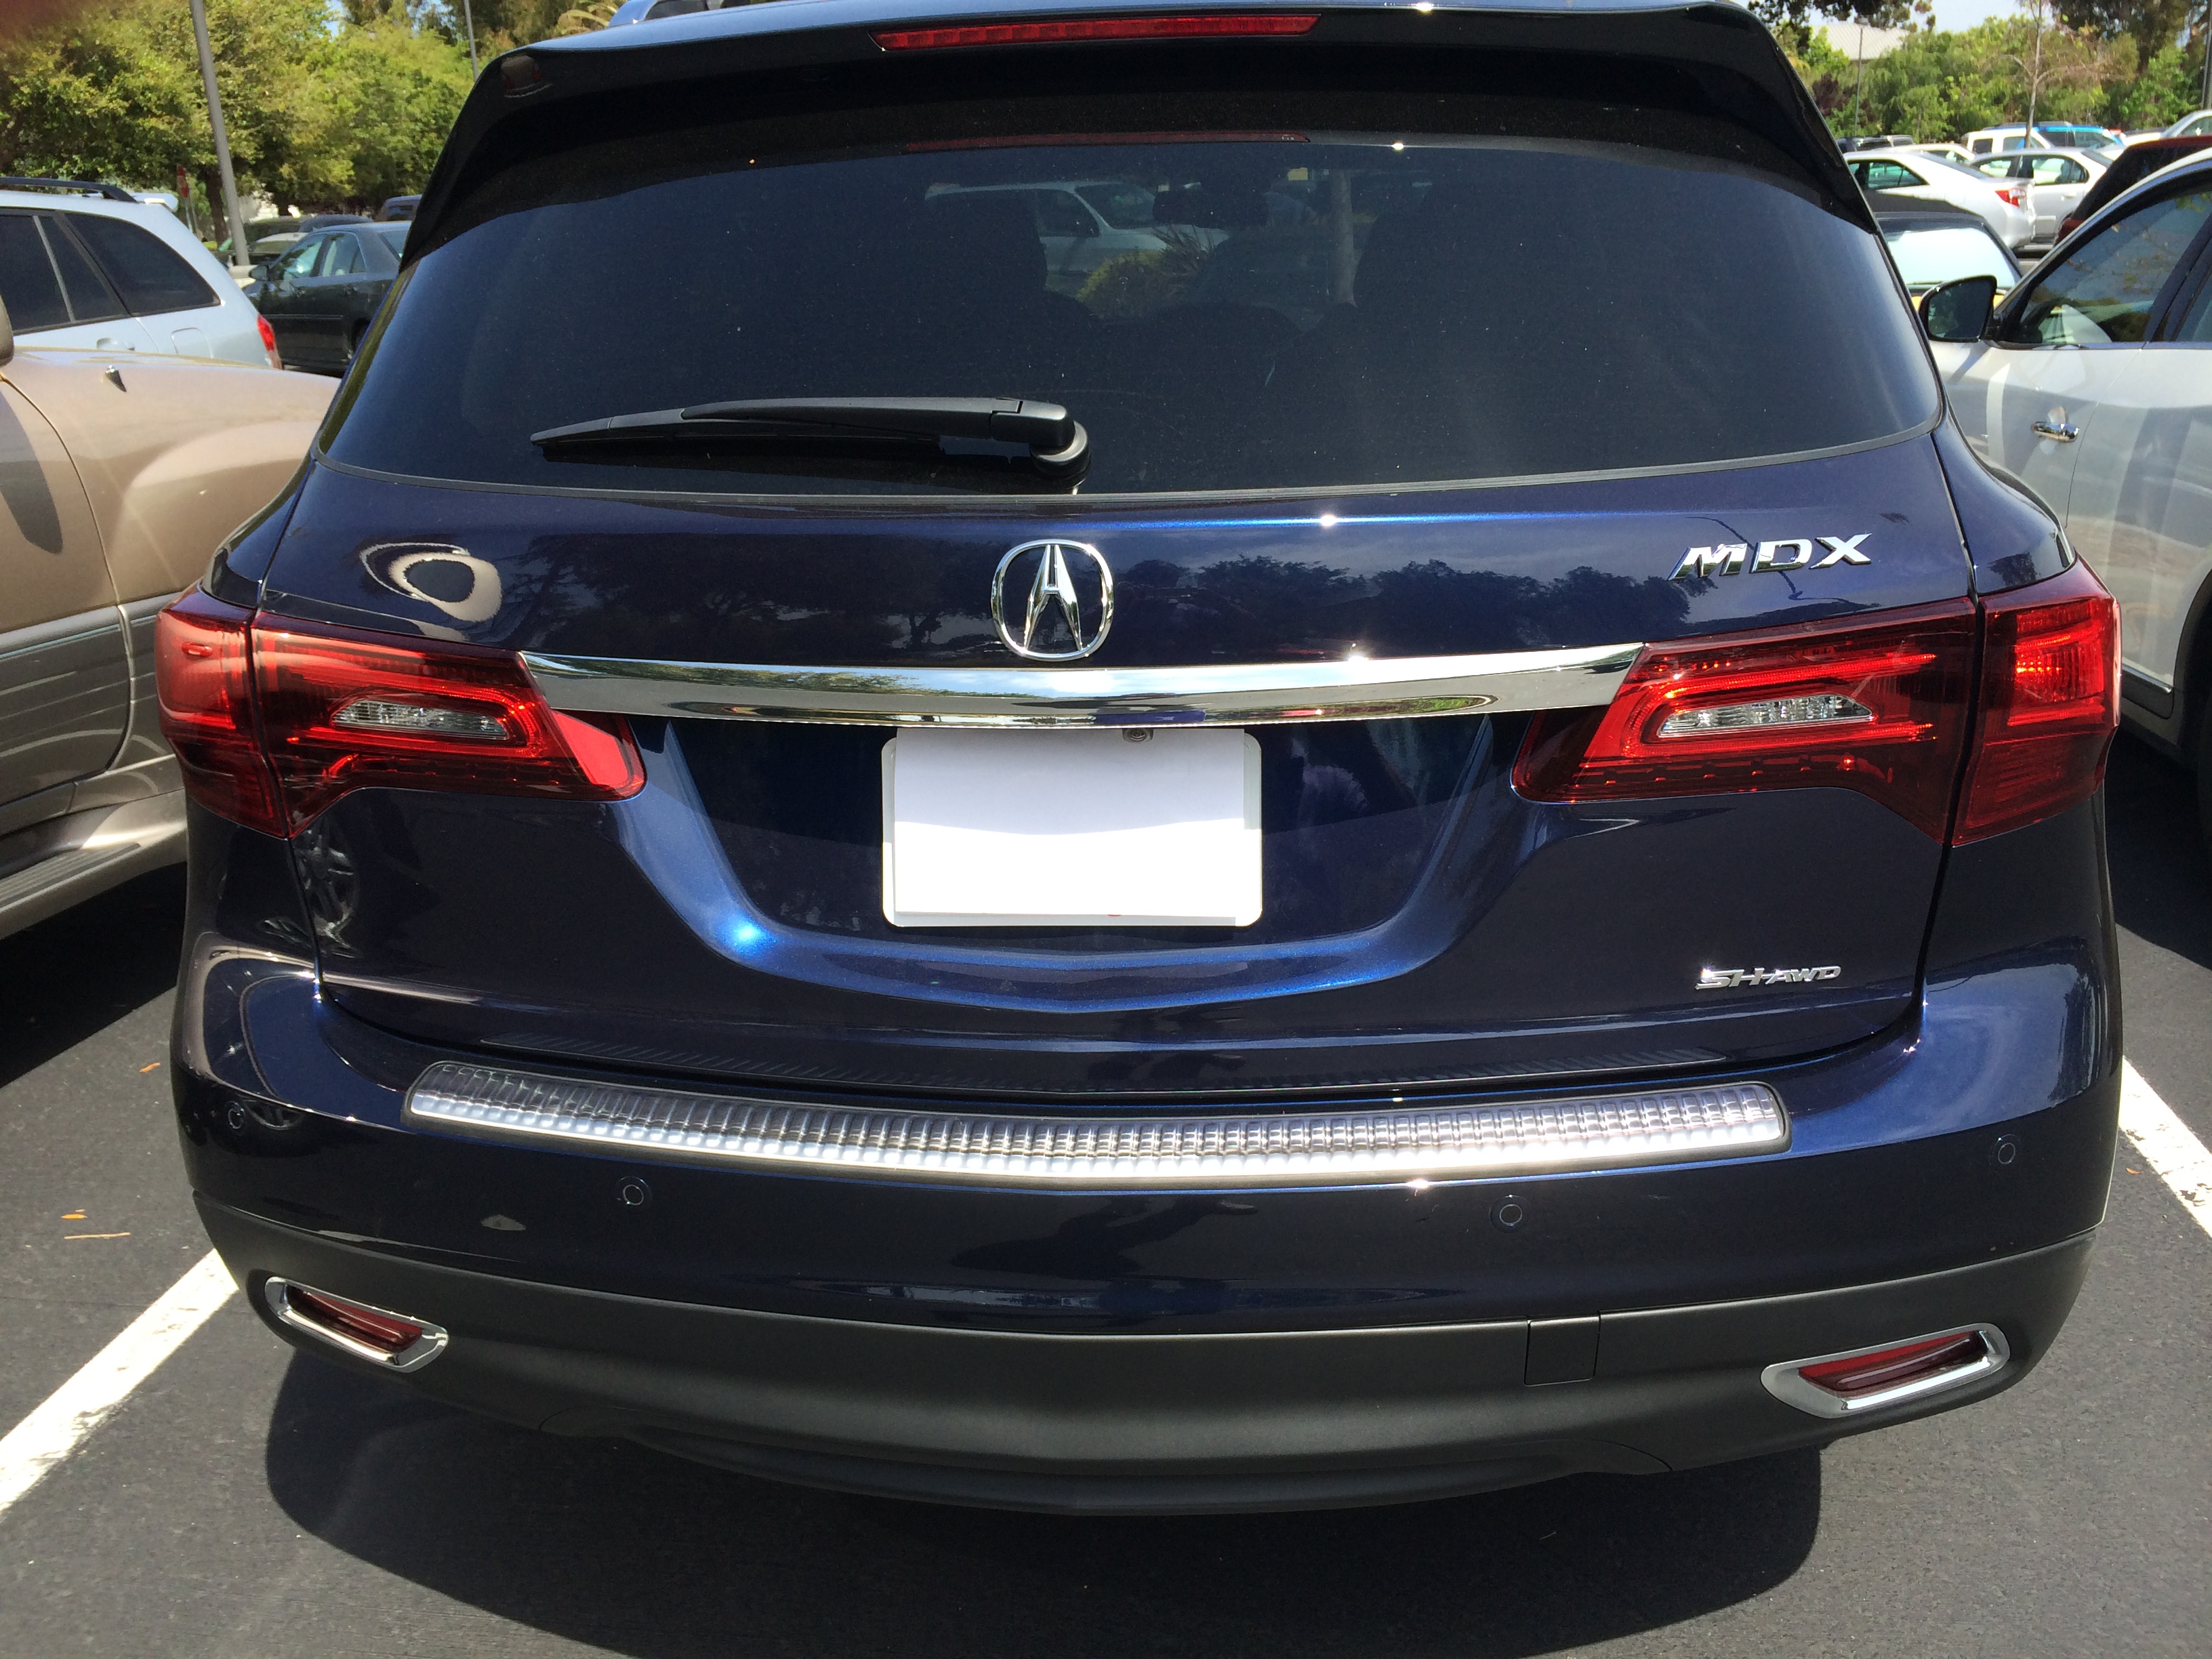 Rear Bumper Protector installed Acura MDX Forum Acura MDX SUV